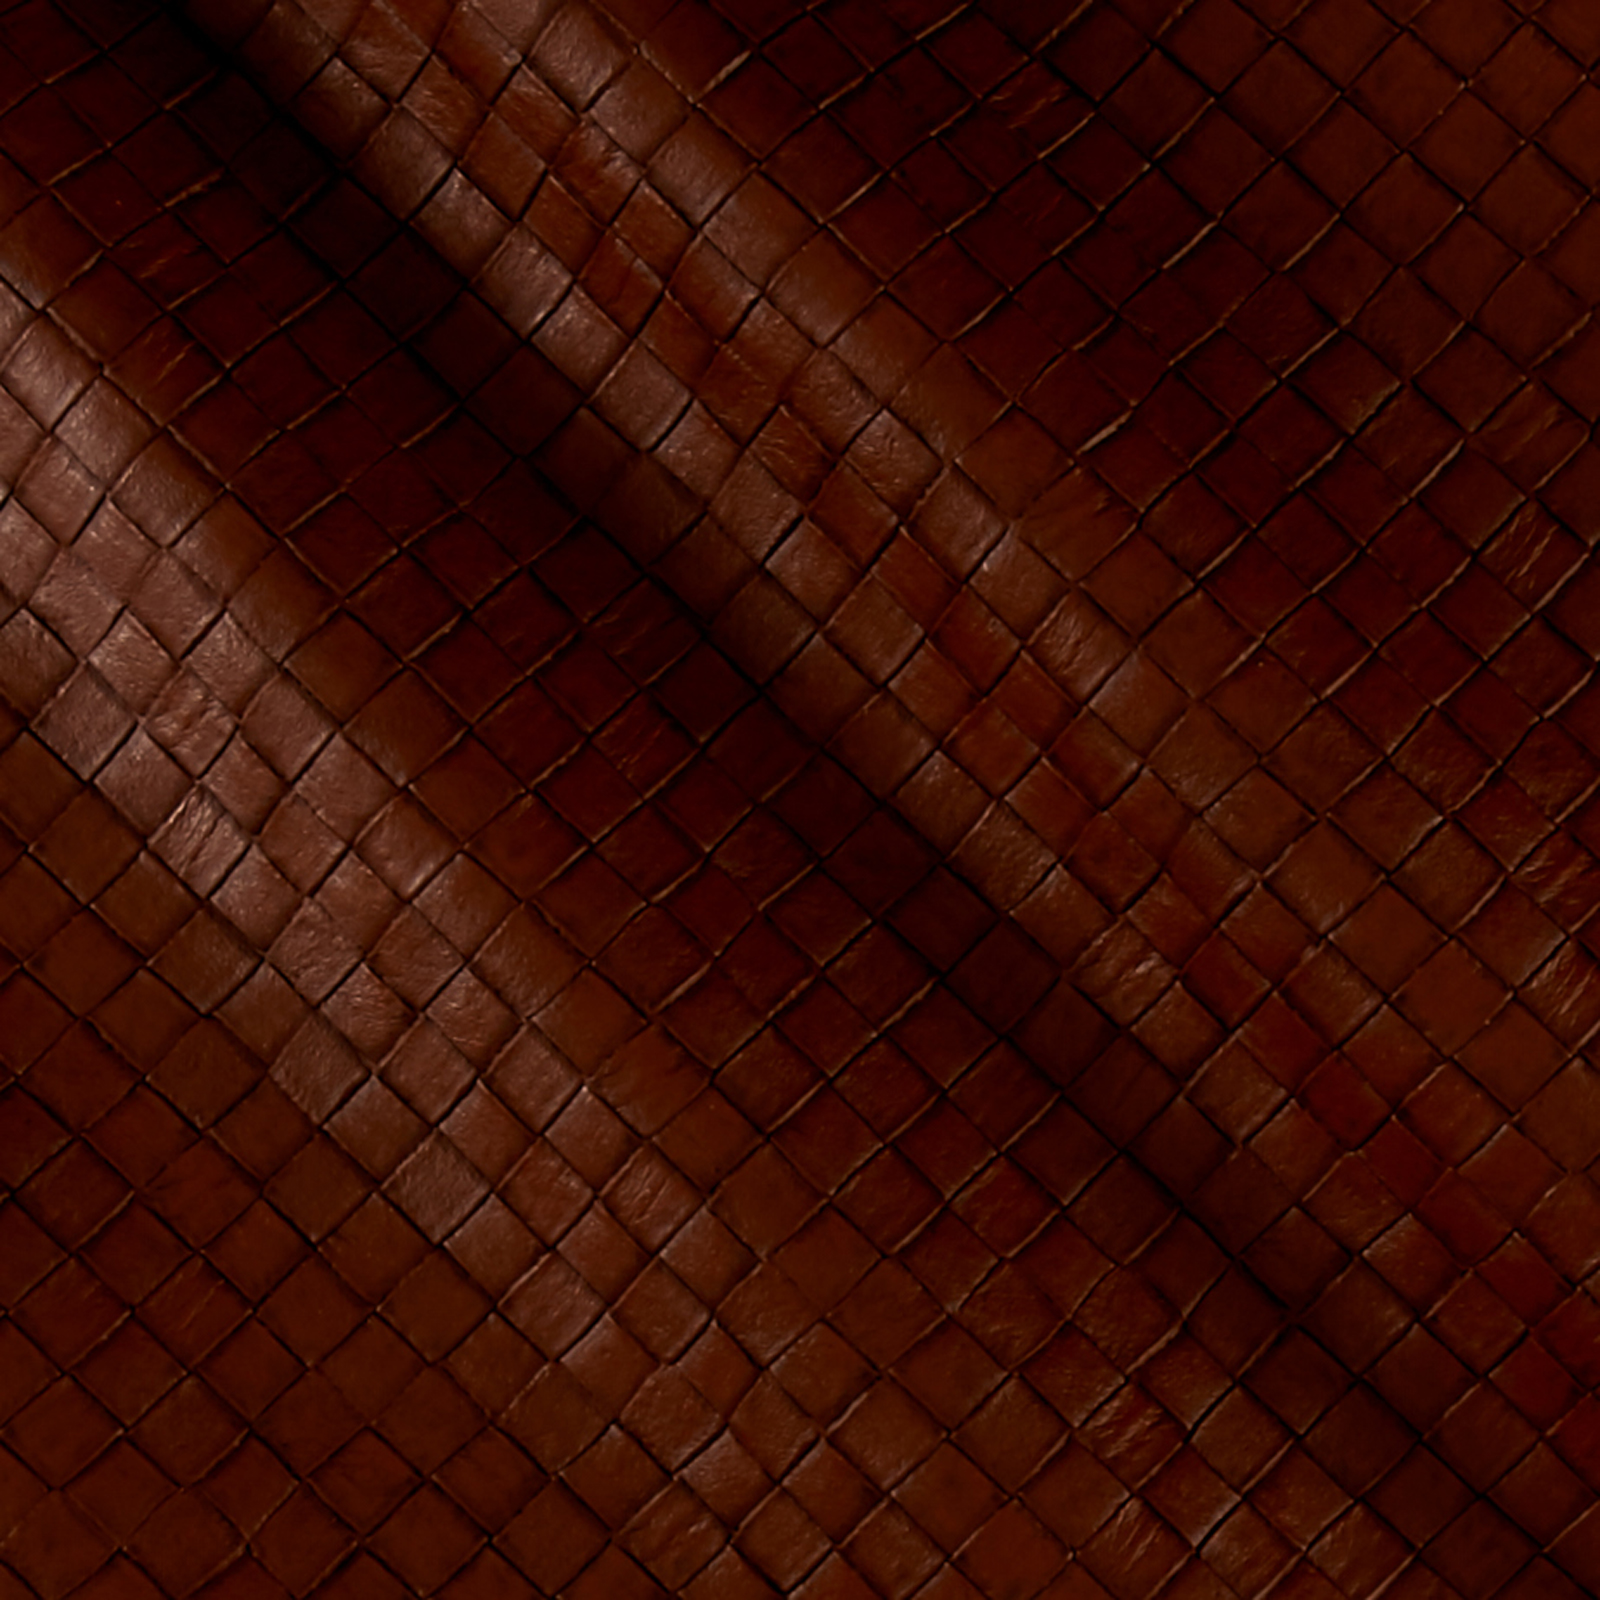 Faux Leather Tile Basketweave Buffalo Fabric by Plastex in USA